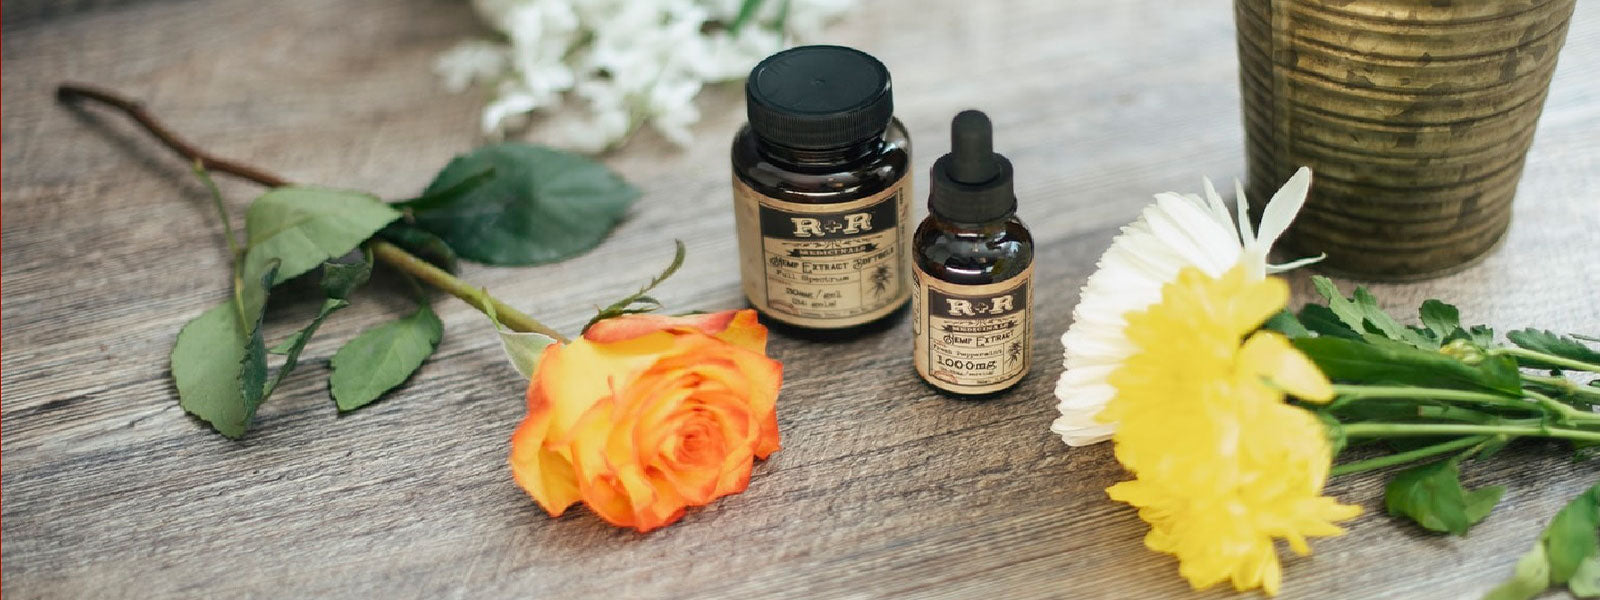 Essential oil with rose